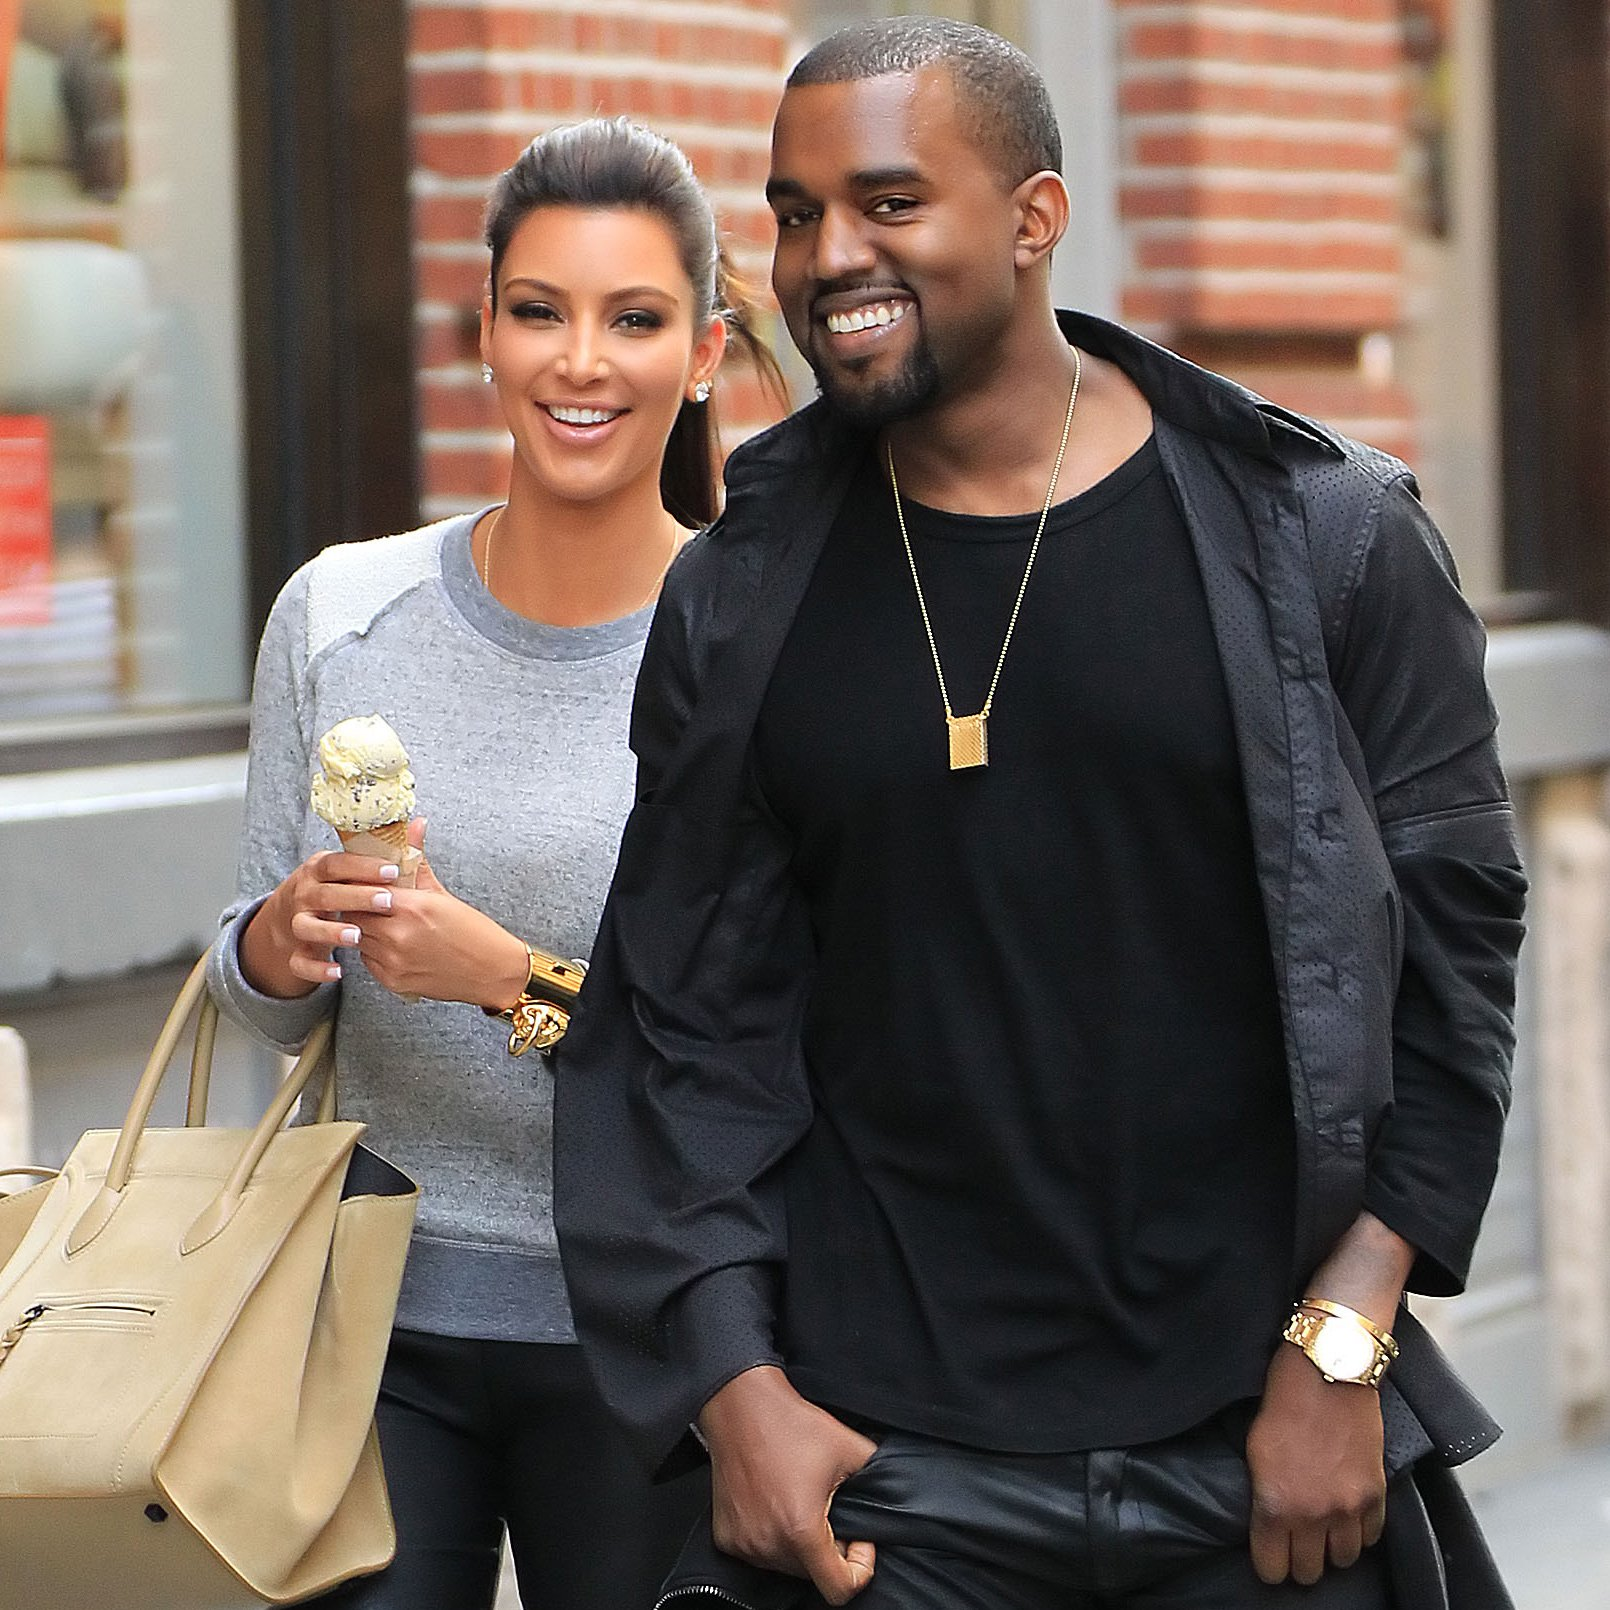 KIM KARDASHIAN AND KANYE WEST TO HIRE SURROGATE FOR THIRD CHILD